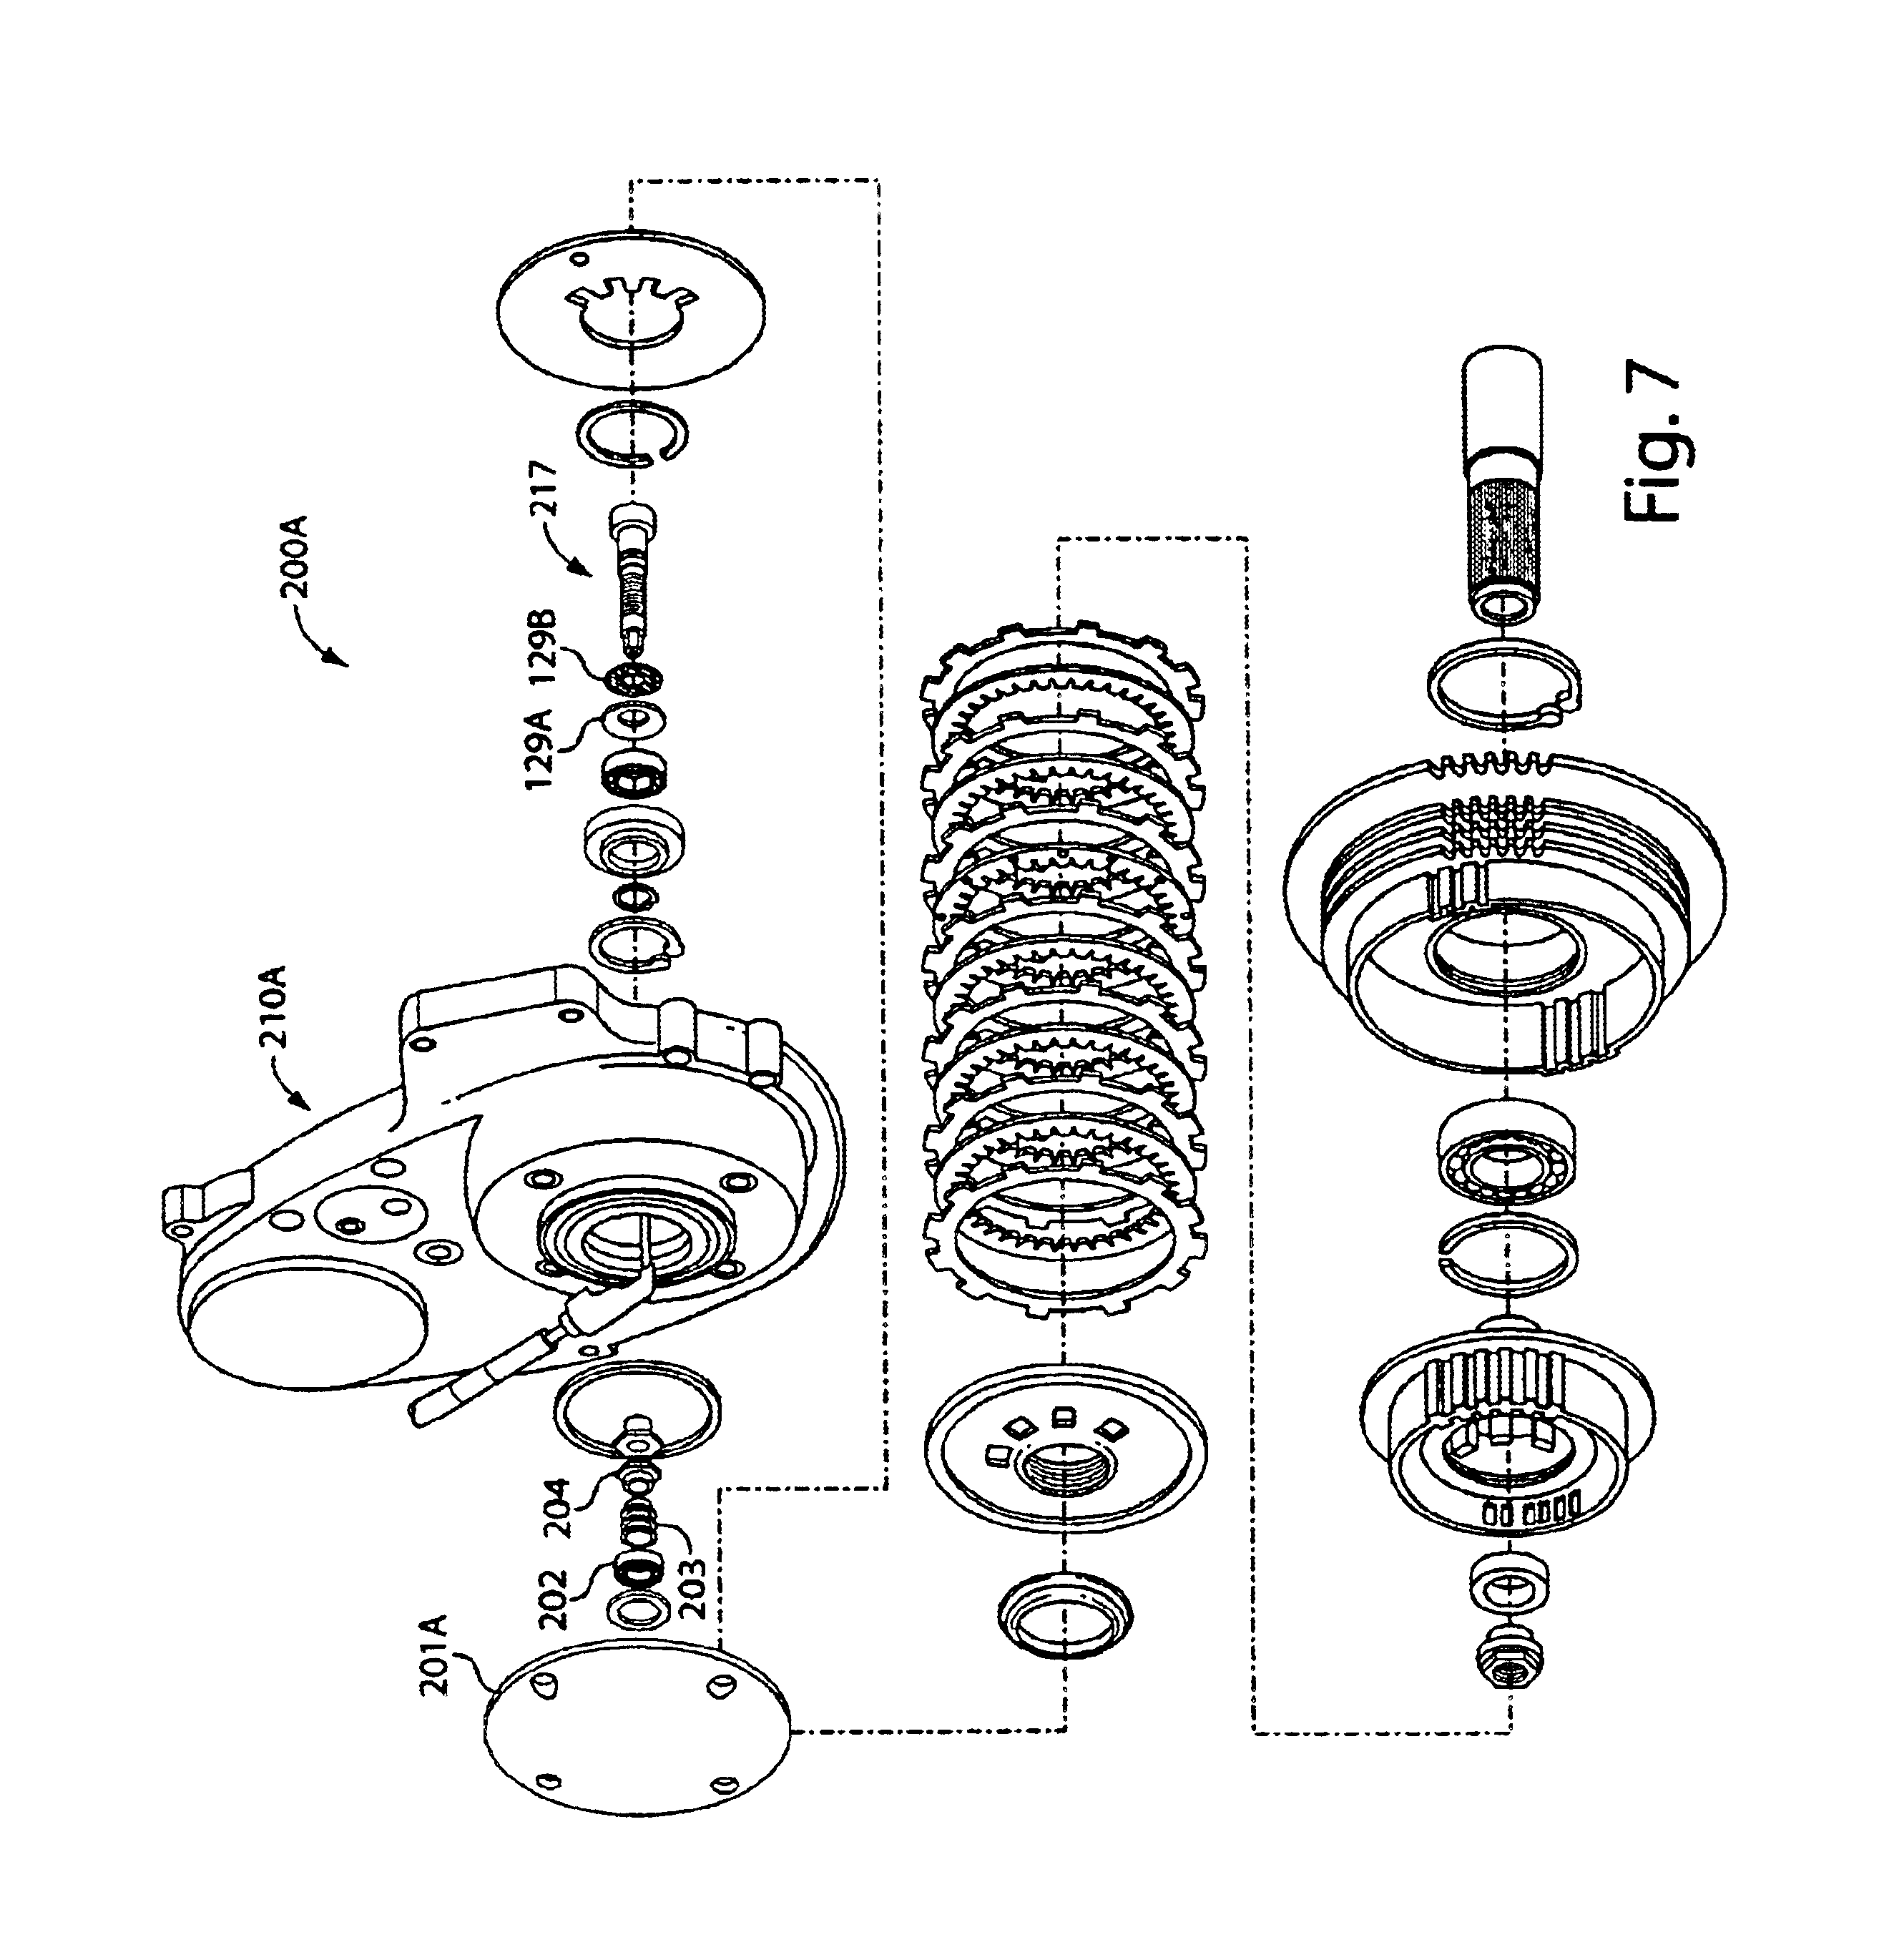 1997 harley sportster transmission diagram